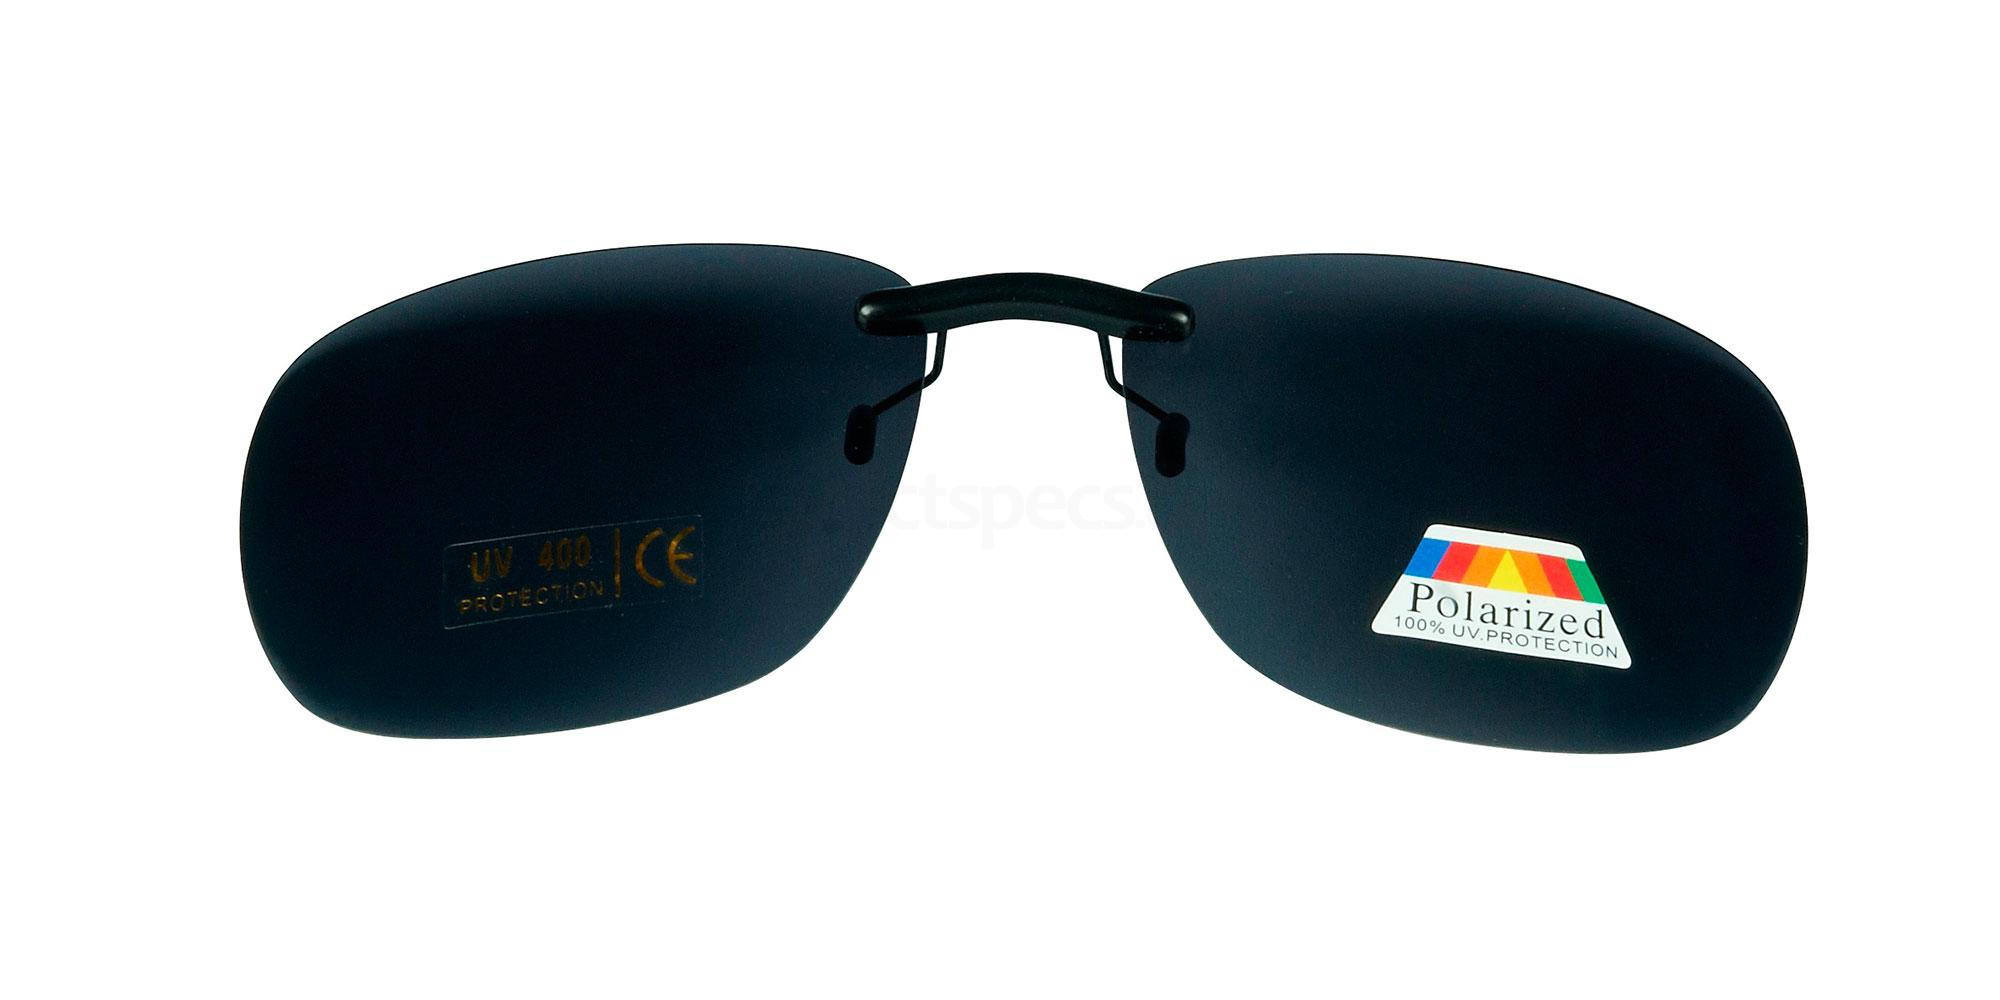 A CL5 – Sunglasses Clip-on Accessories, Optical accessories